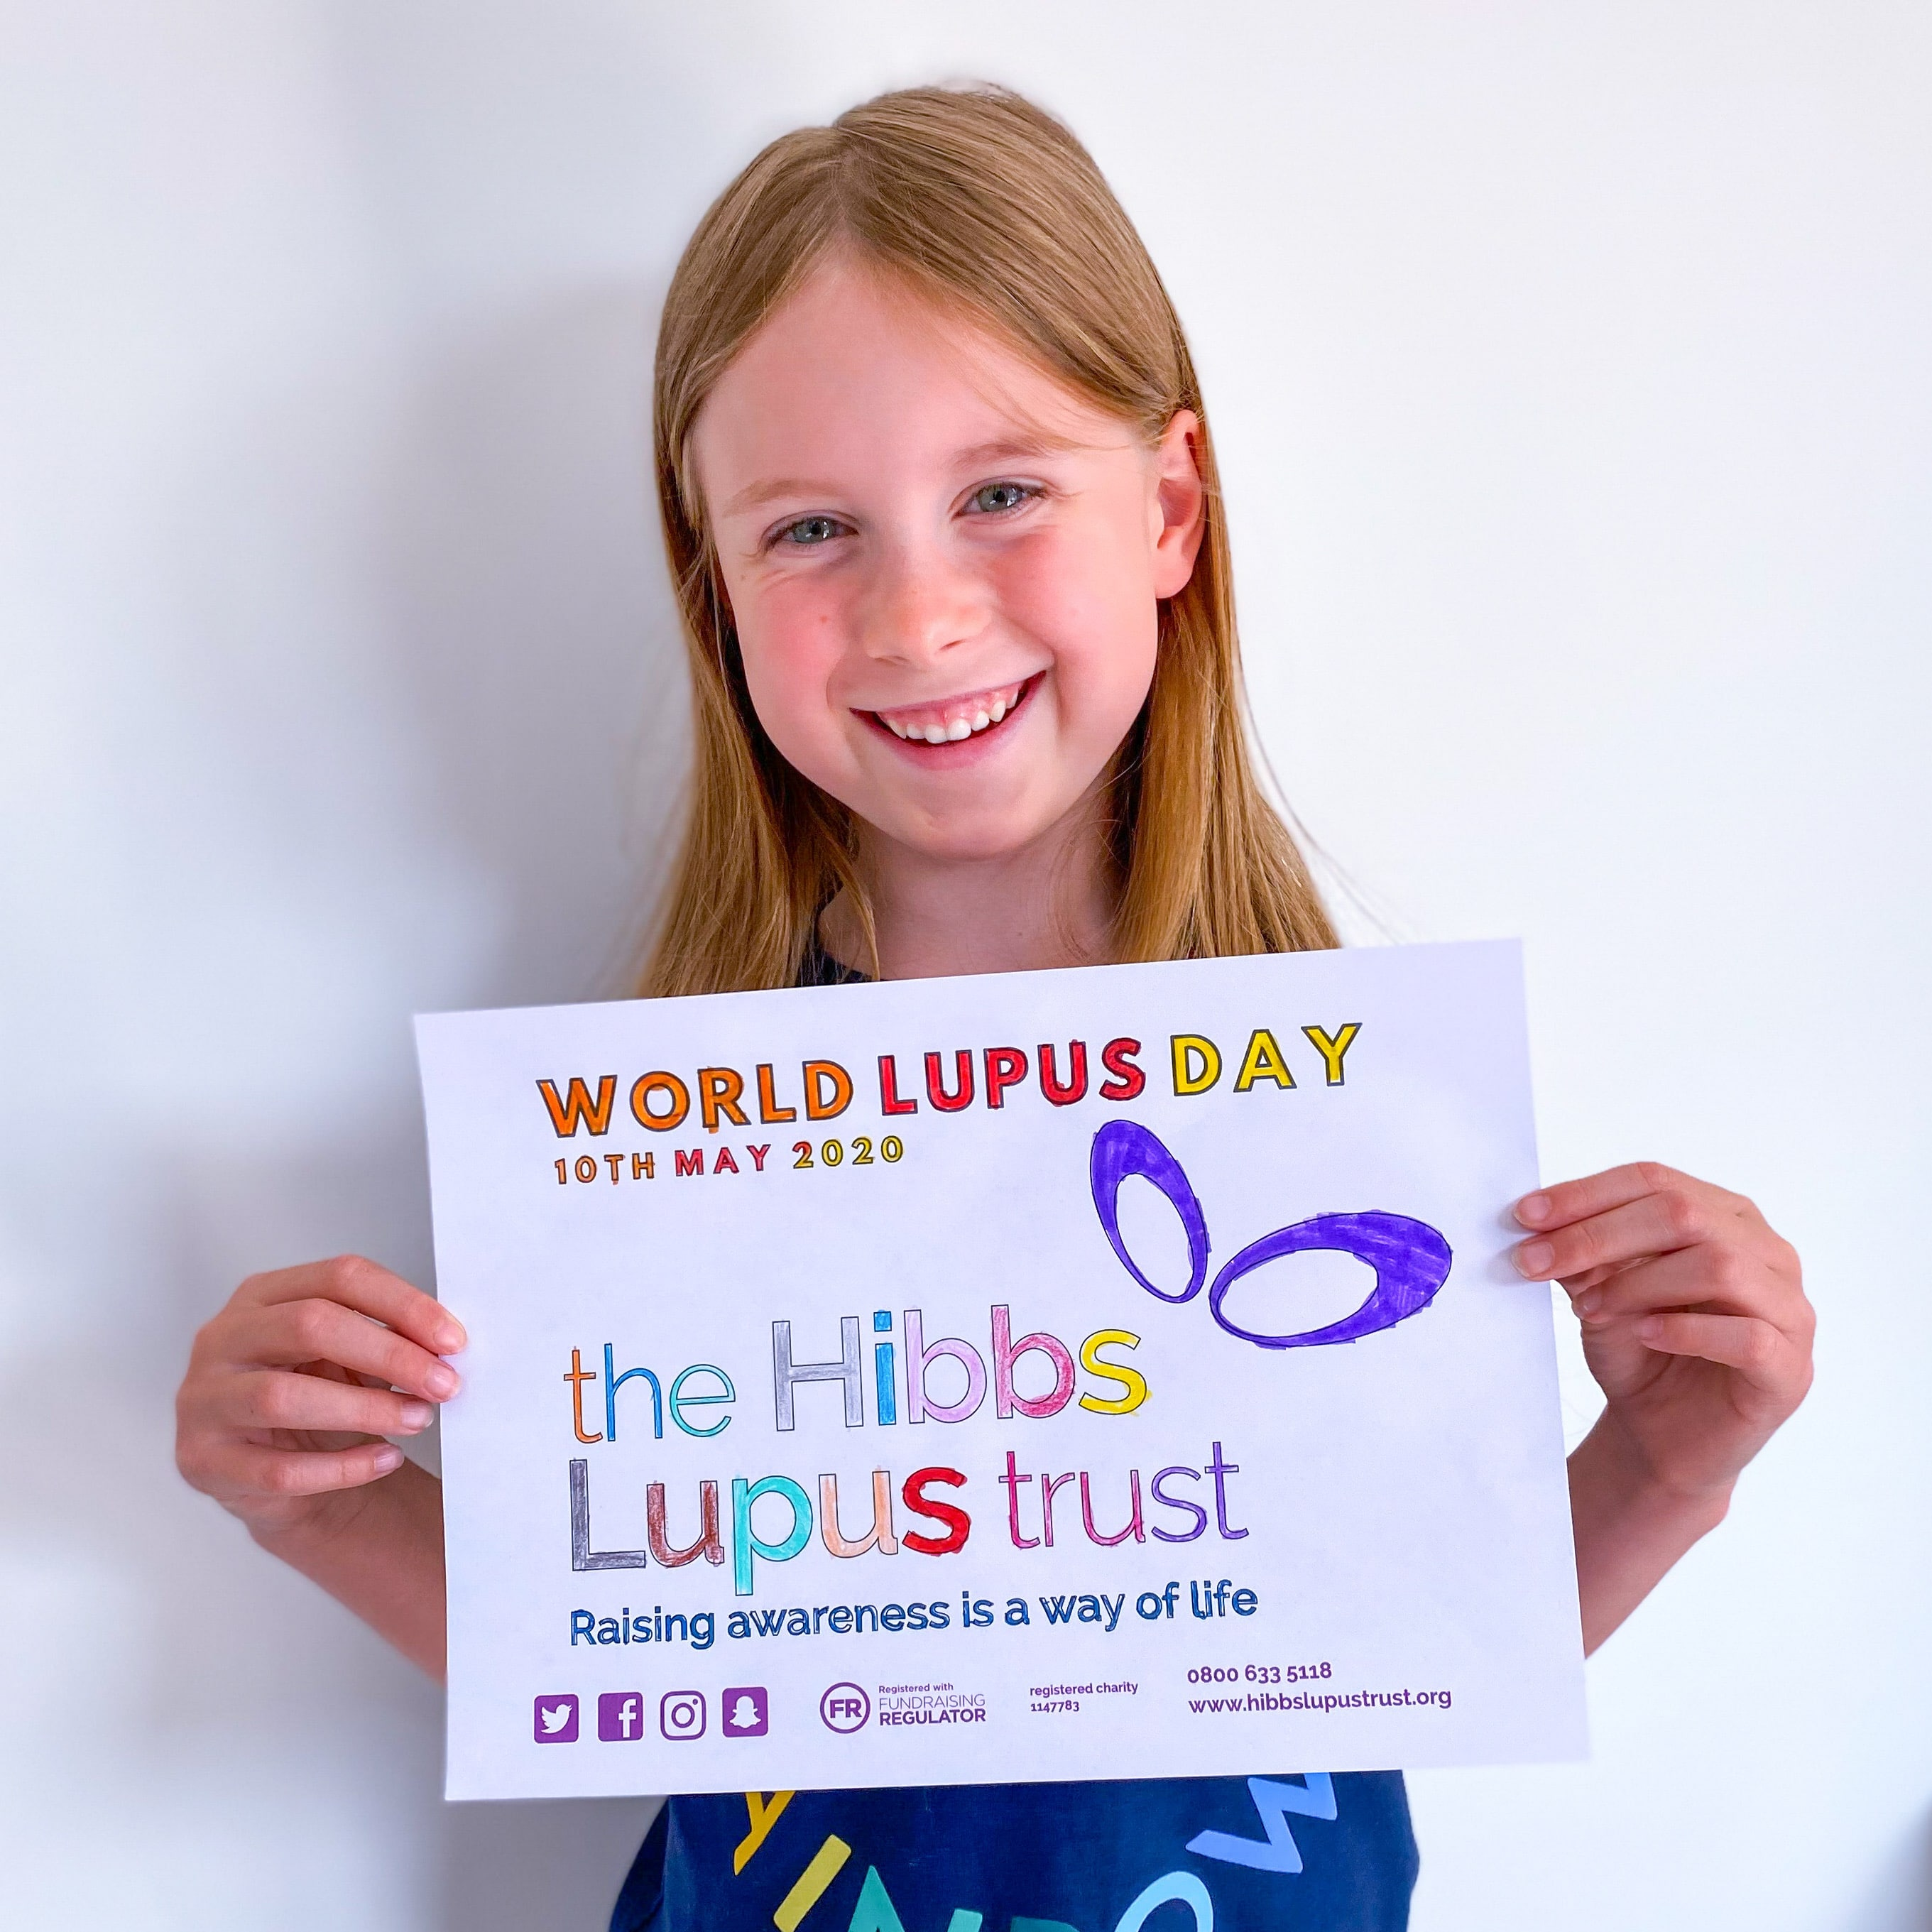 WORLD LUPUS DAY - The Hibbs Lupus Trust 3